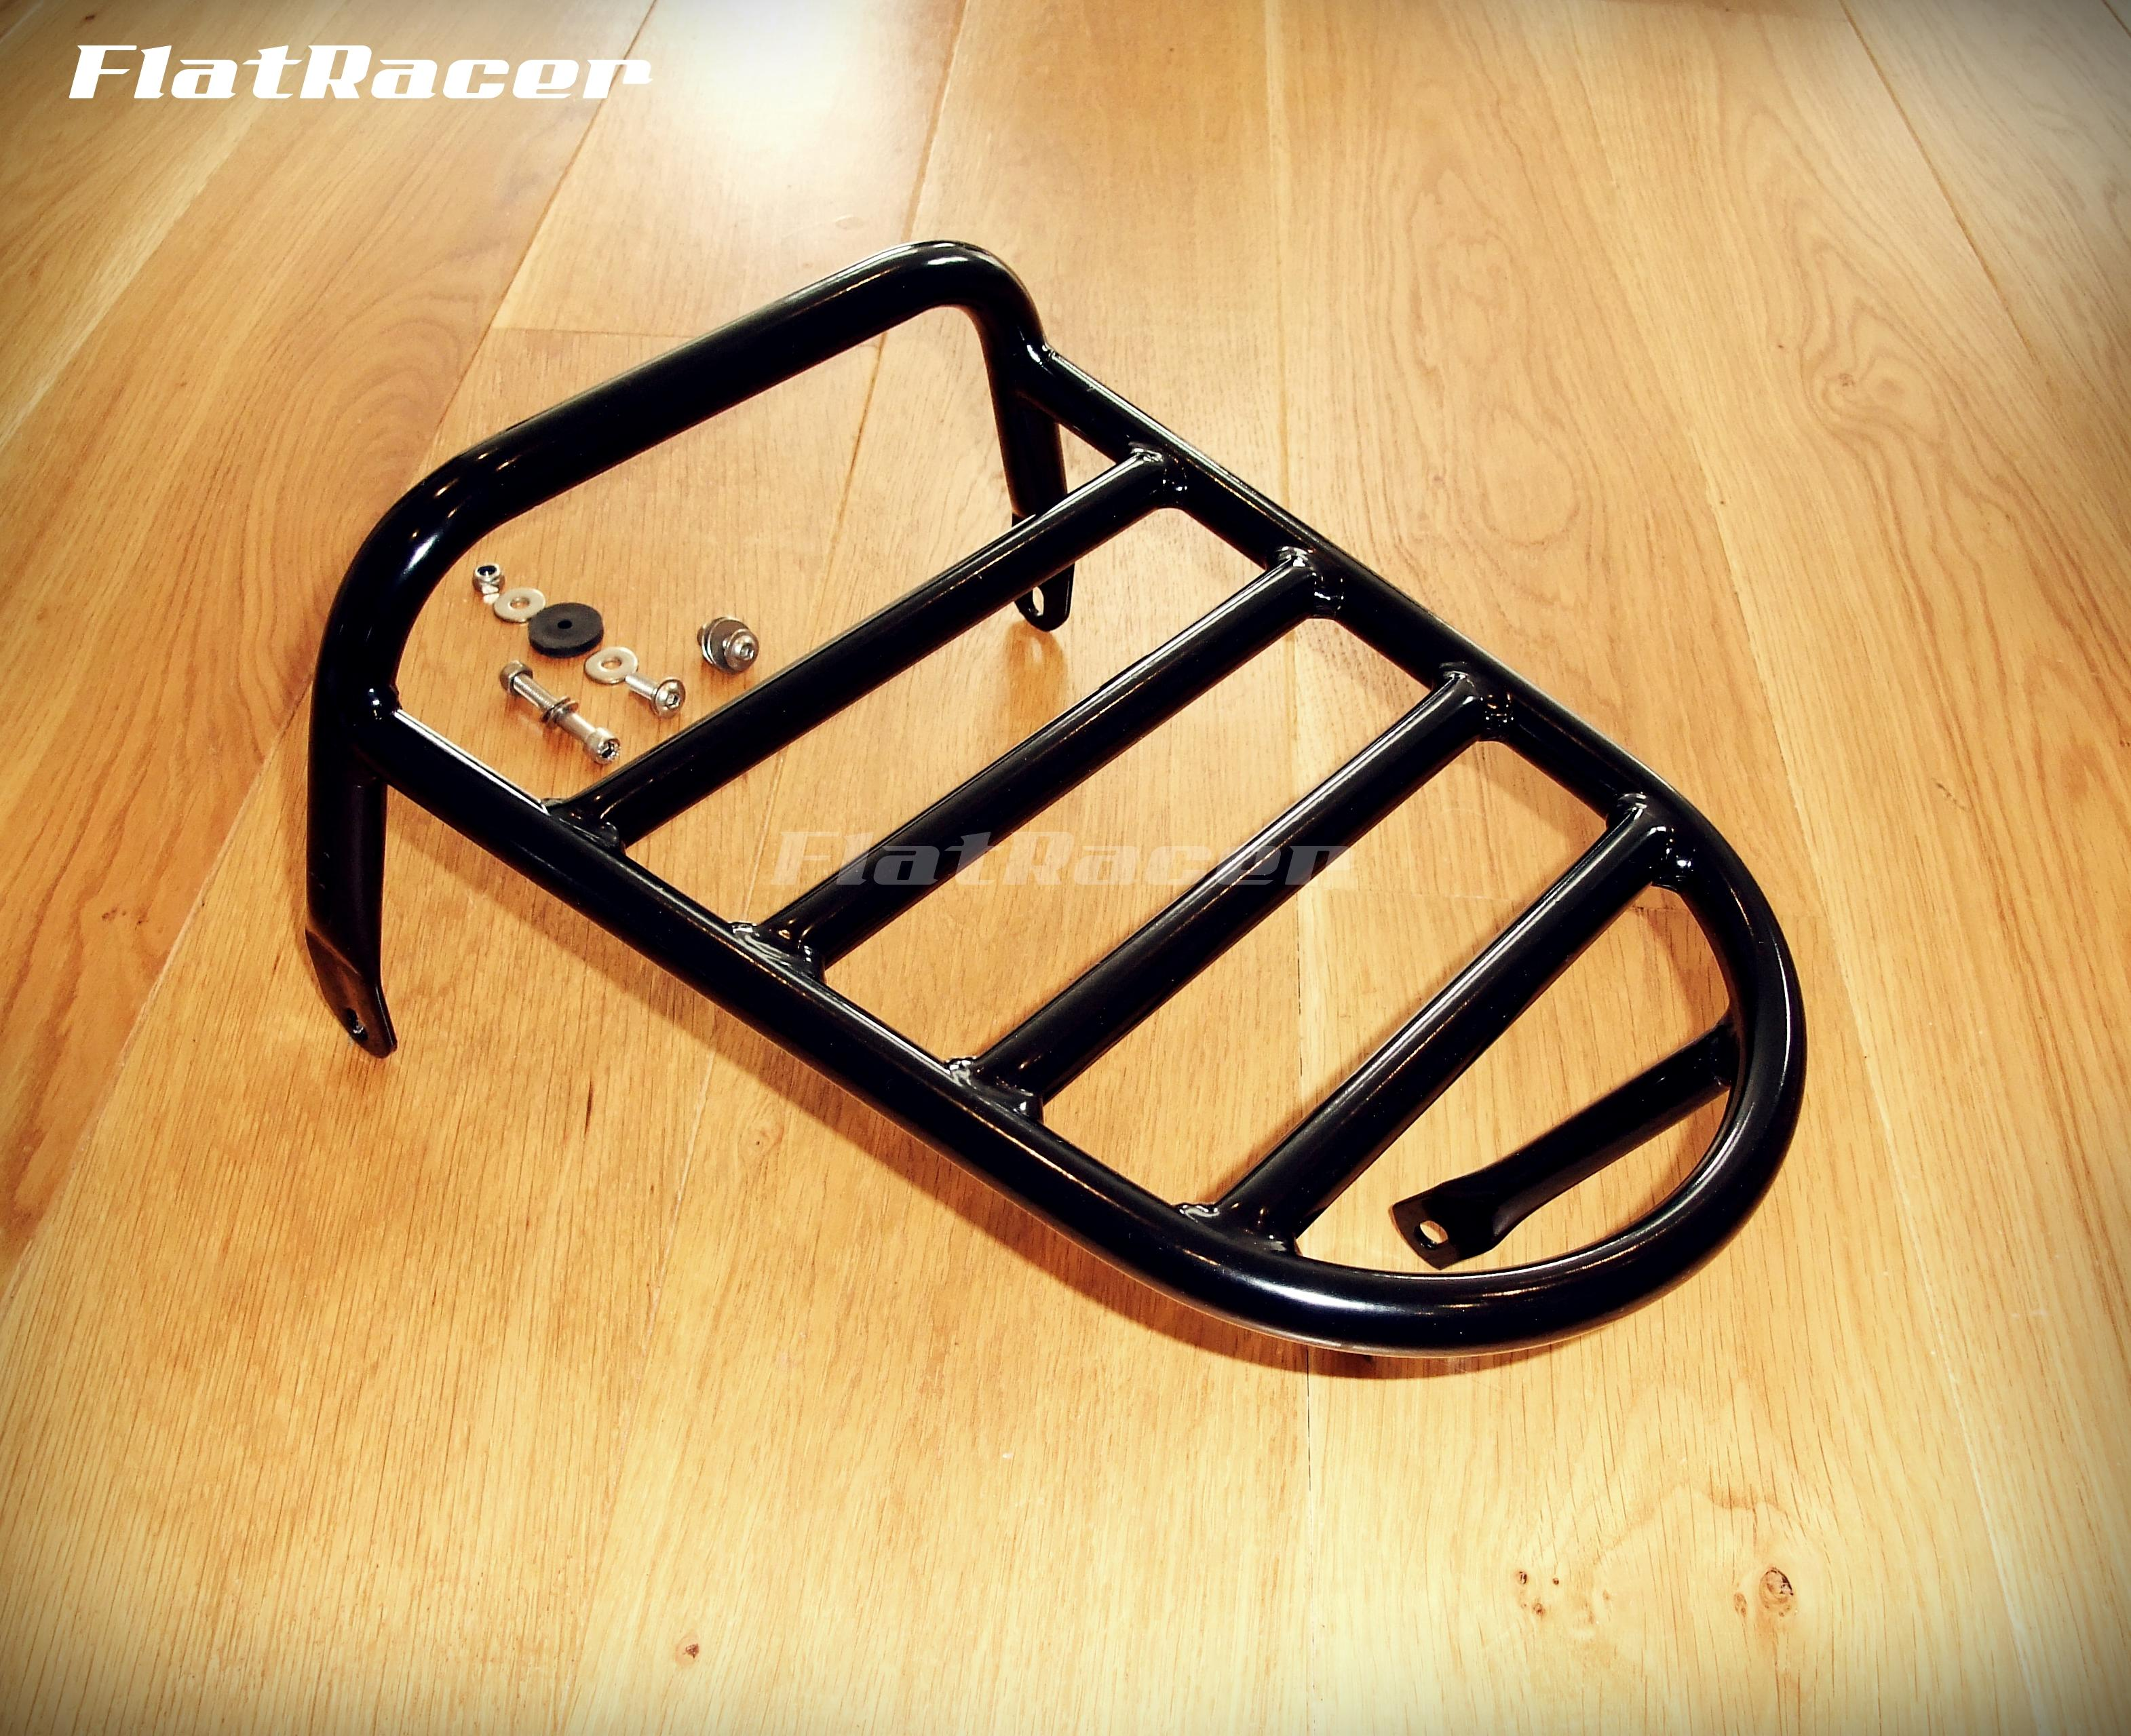 FlatRacer BMW R2v TIC rear luggage rack - black